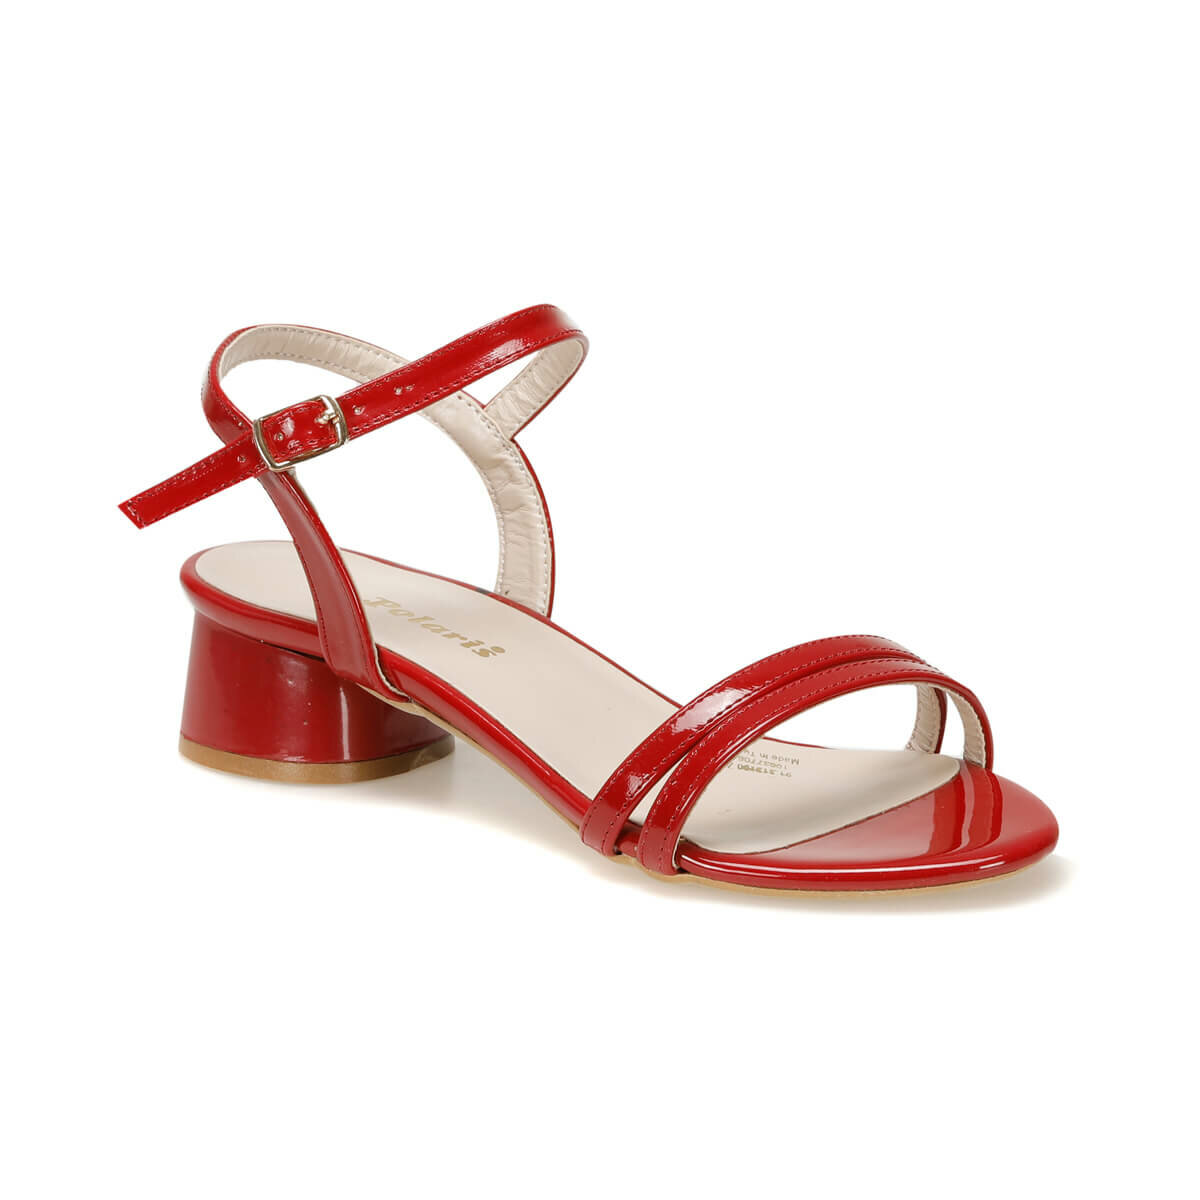 FLO 91.313190.Z Red Women Sandals Polaris